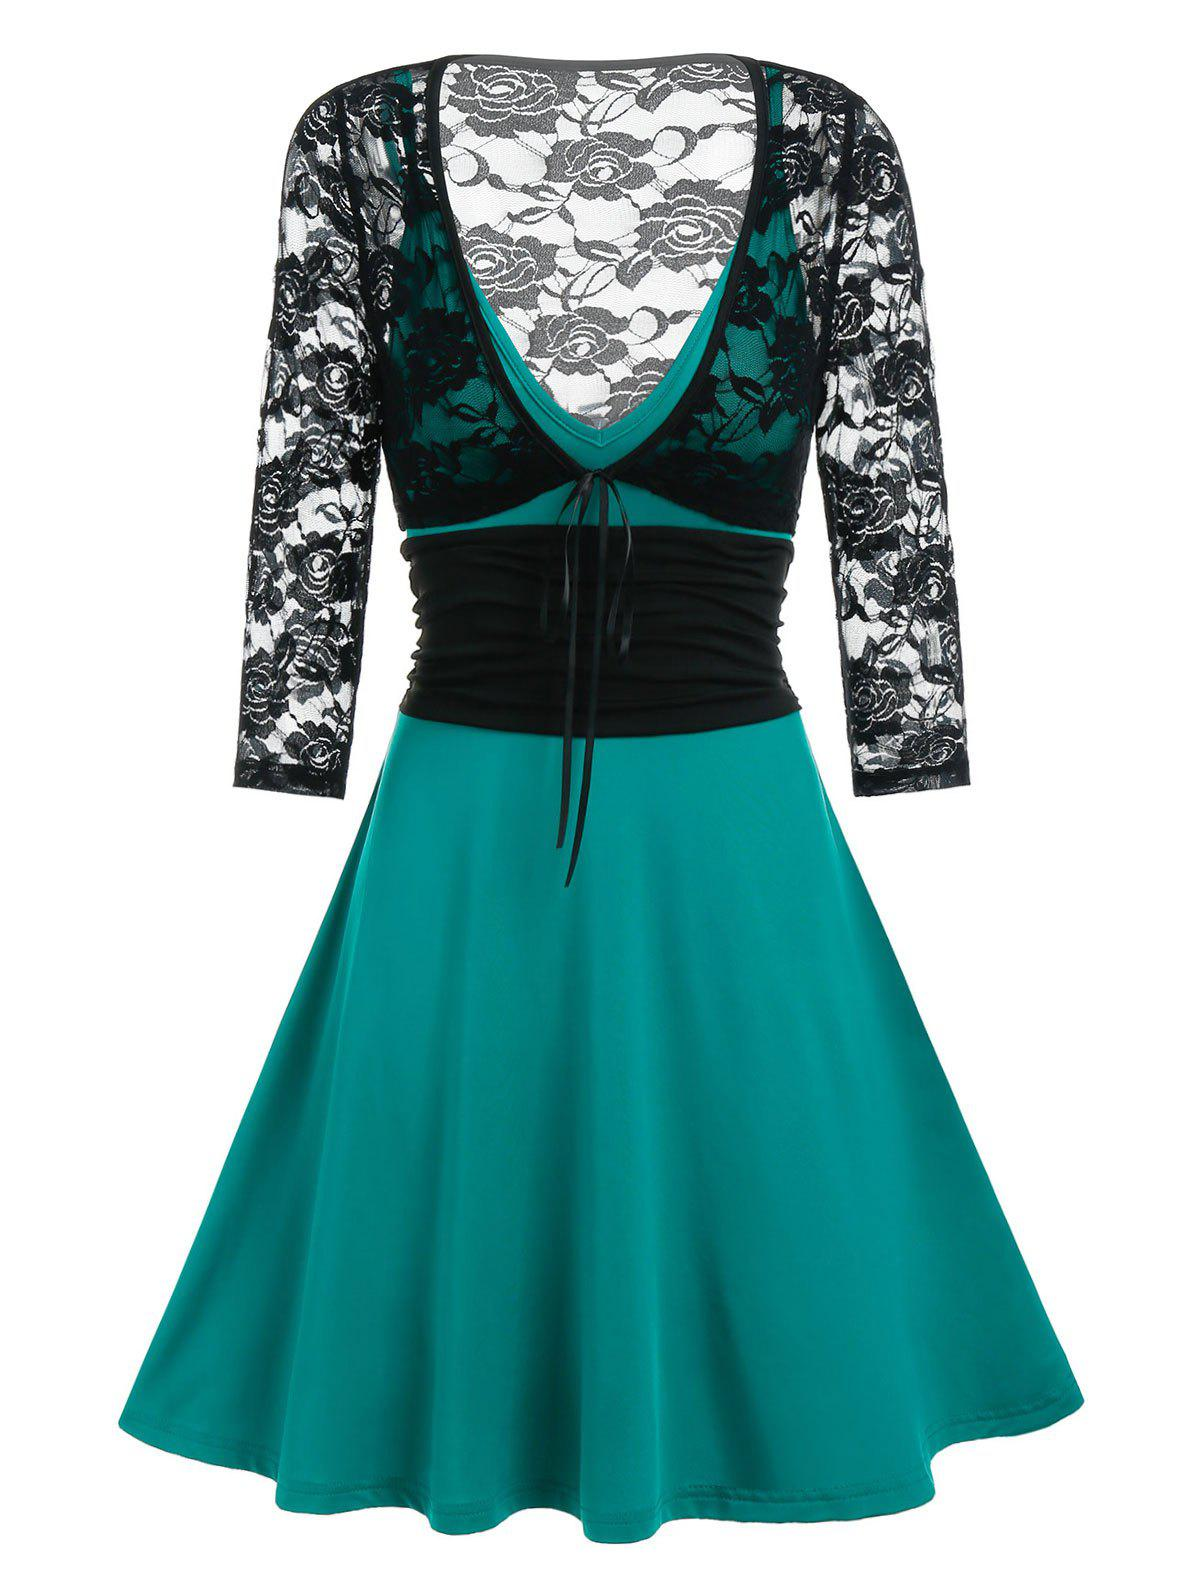 Tie Front Lace Crop Top And Cami A Line Dress Set - MEDIUM TURQUOISE 2XL